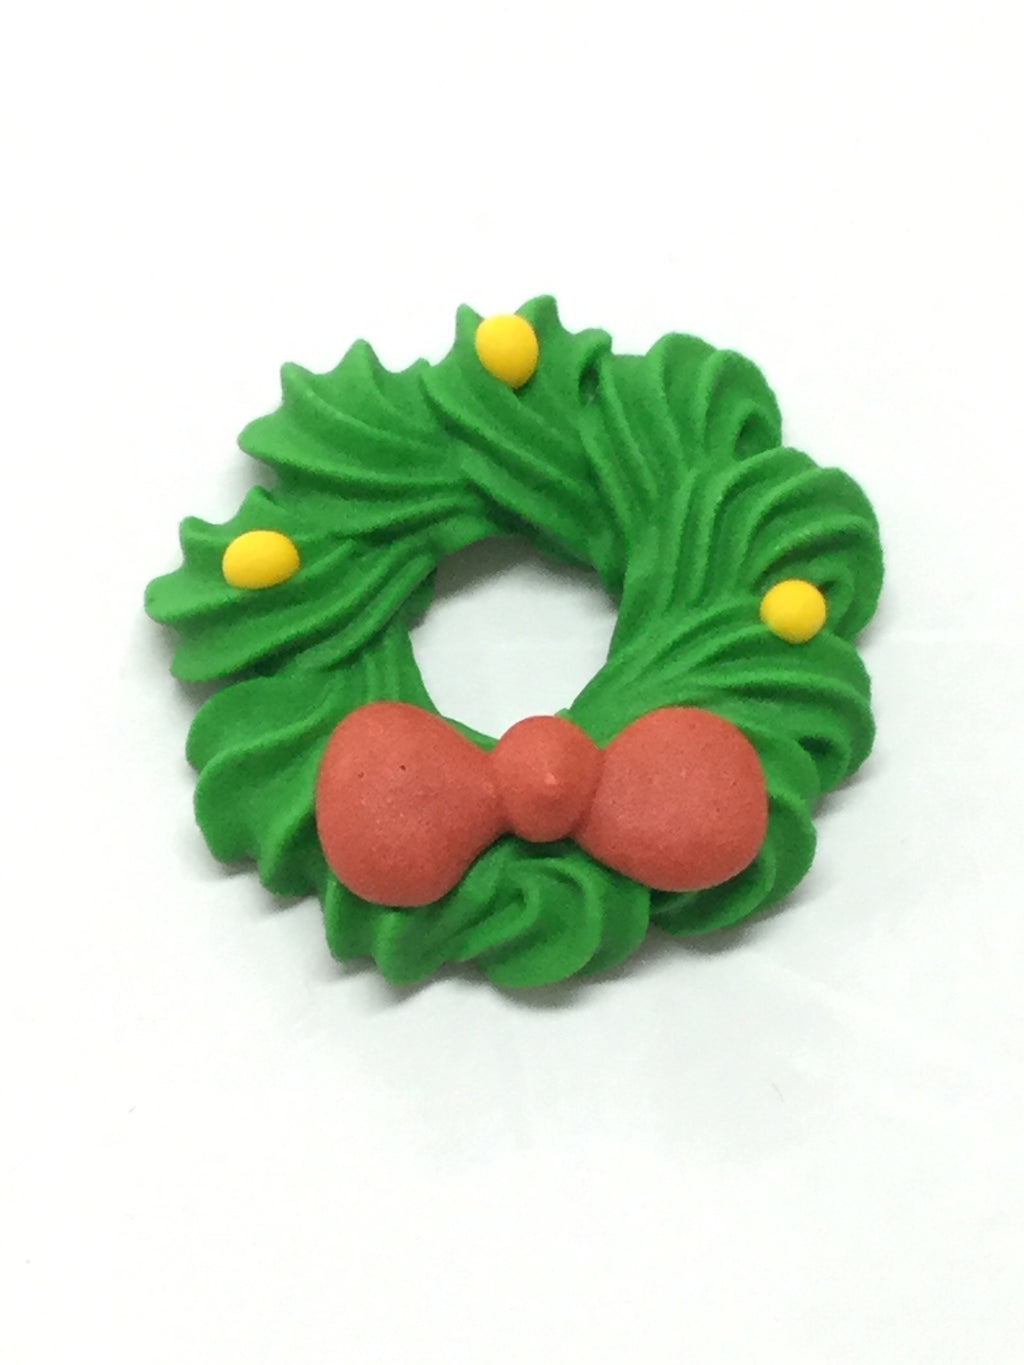 Edible Christmas Toppers - Wreath